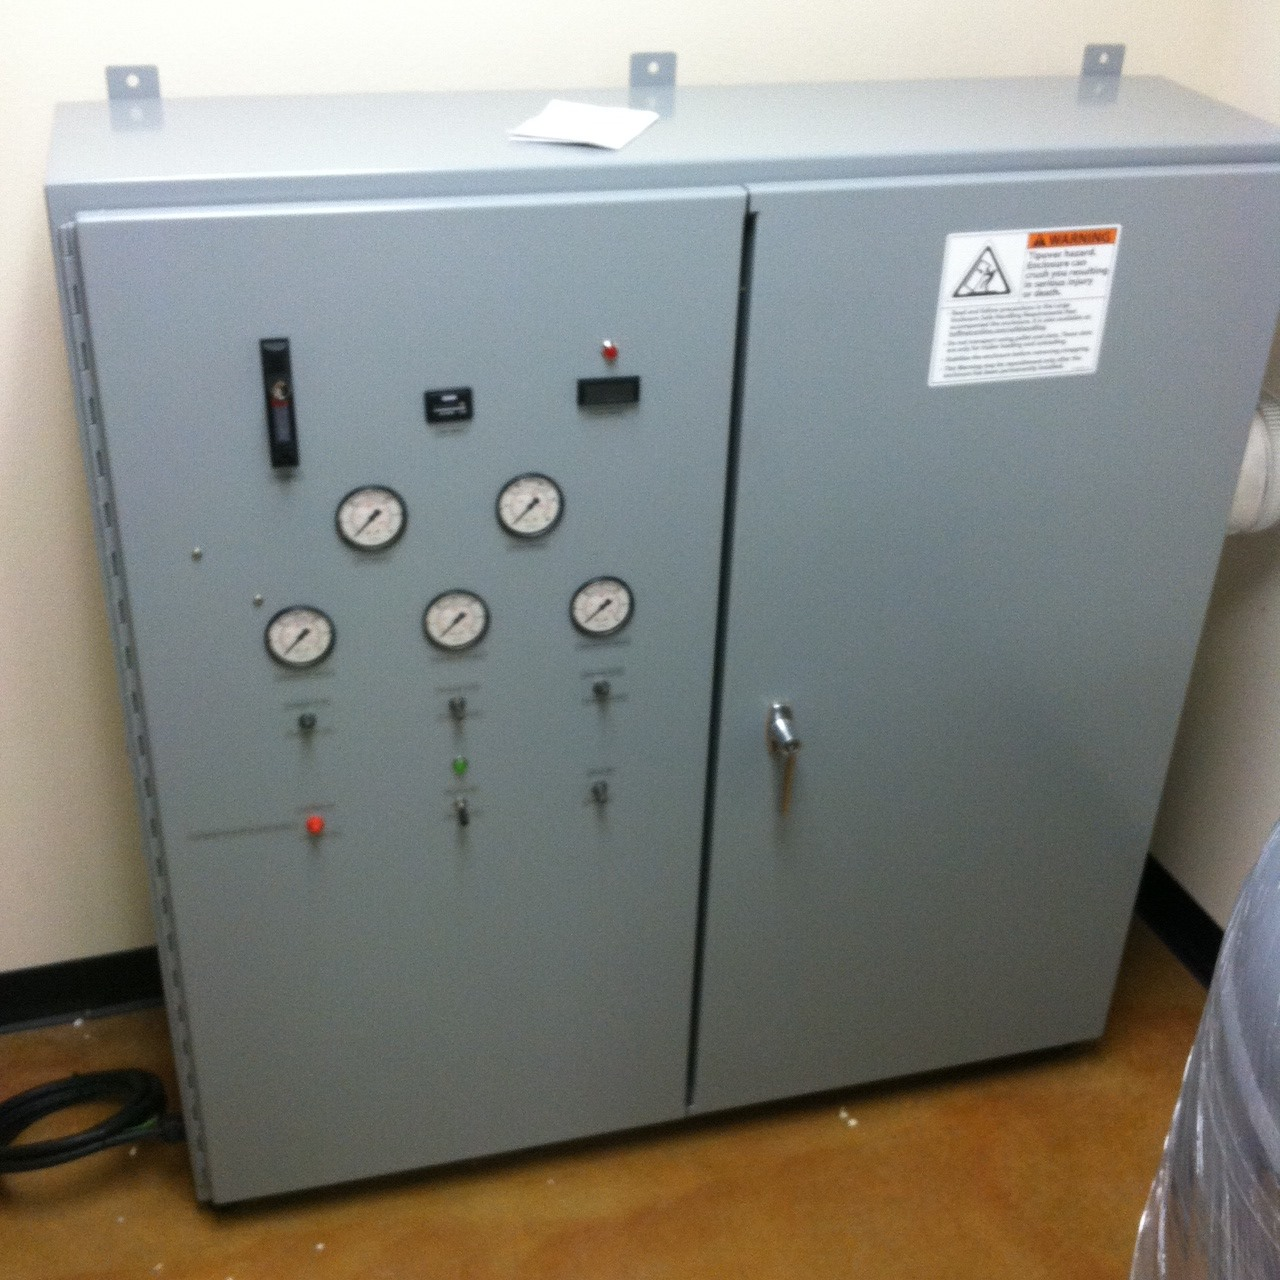 Oxygen generator with the access door closed.